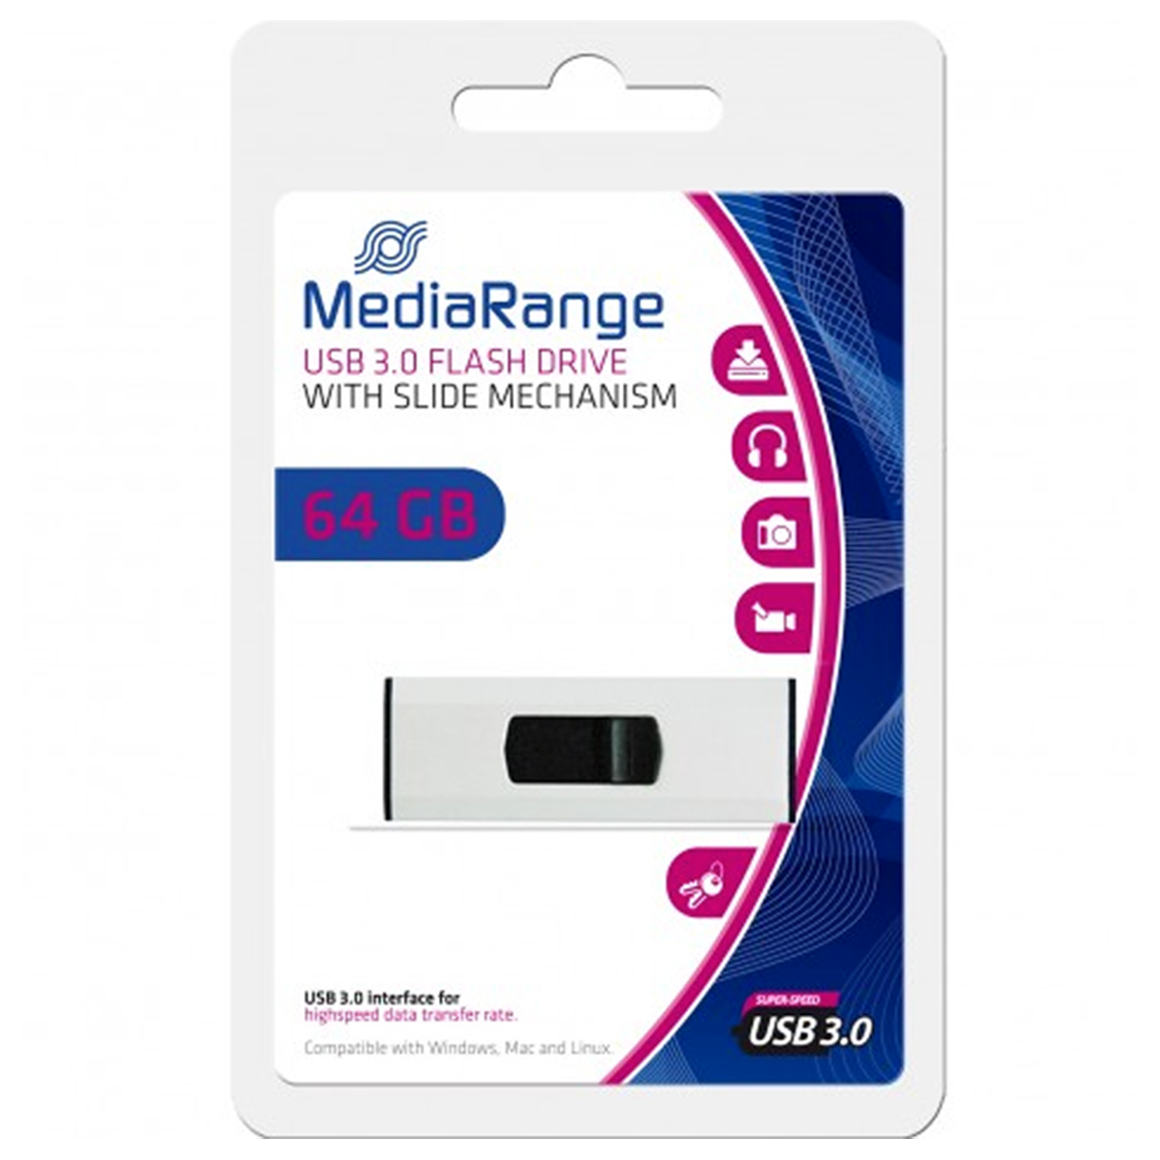 MediaRange USB 3.0 Flash Drive, 64 GB